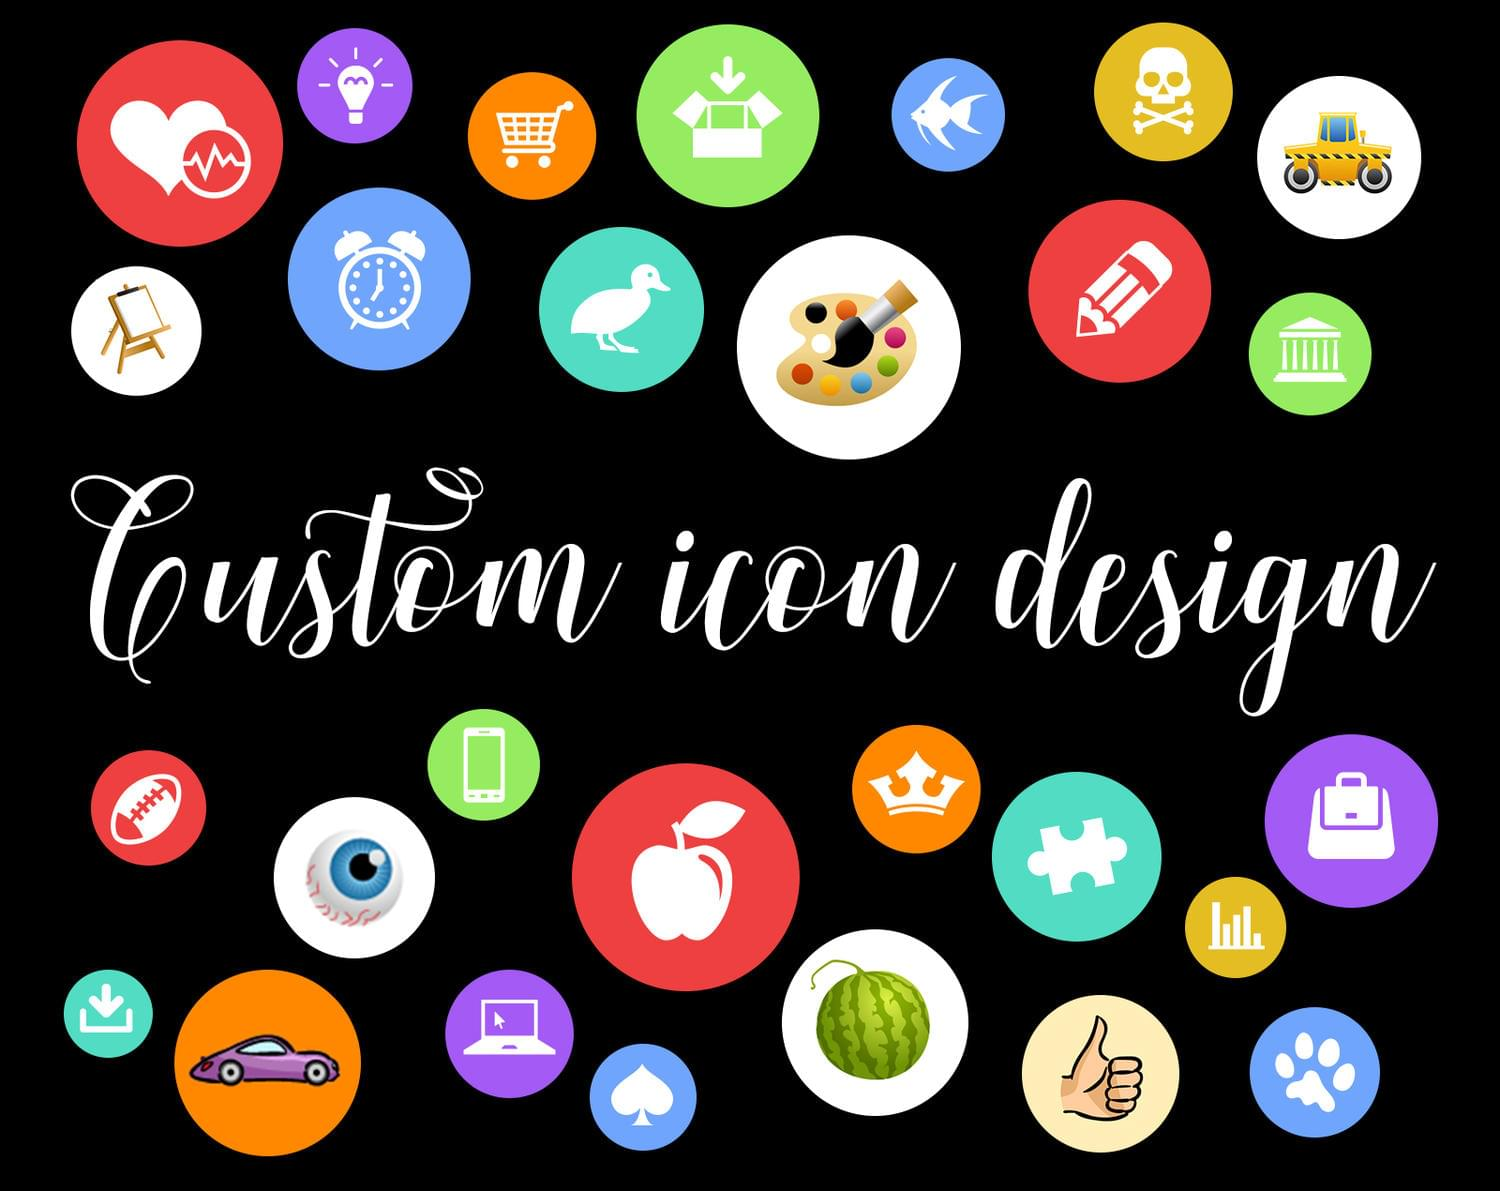 Custom Icon Set Design by vectorocean - 112897